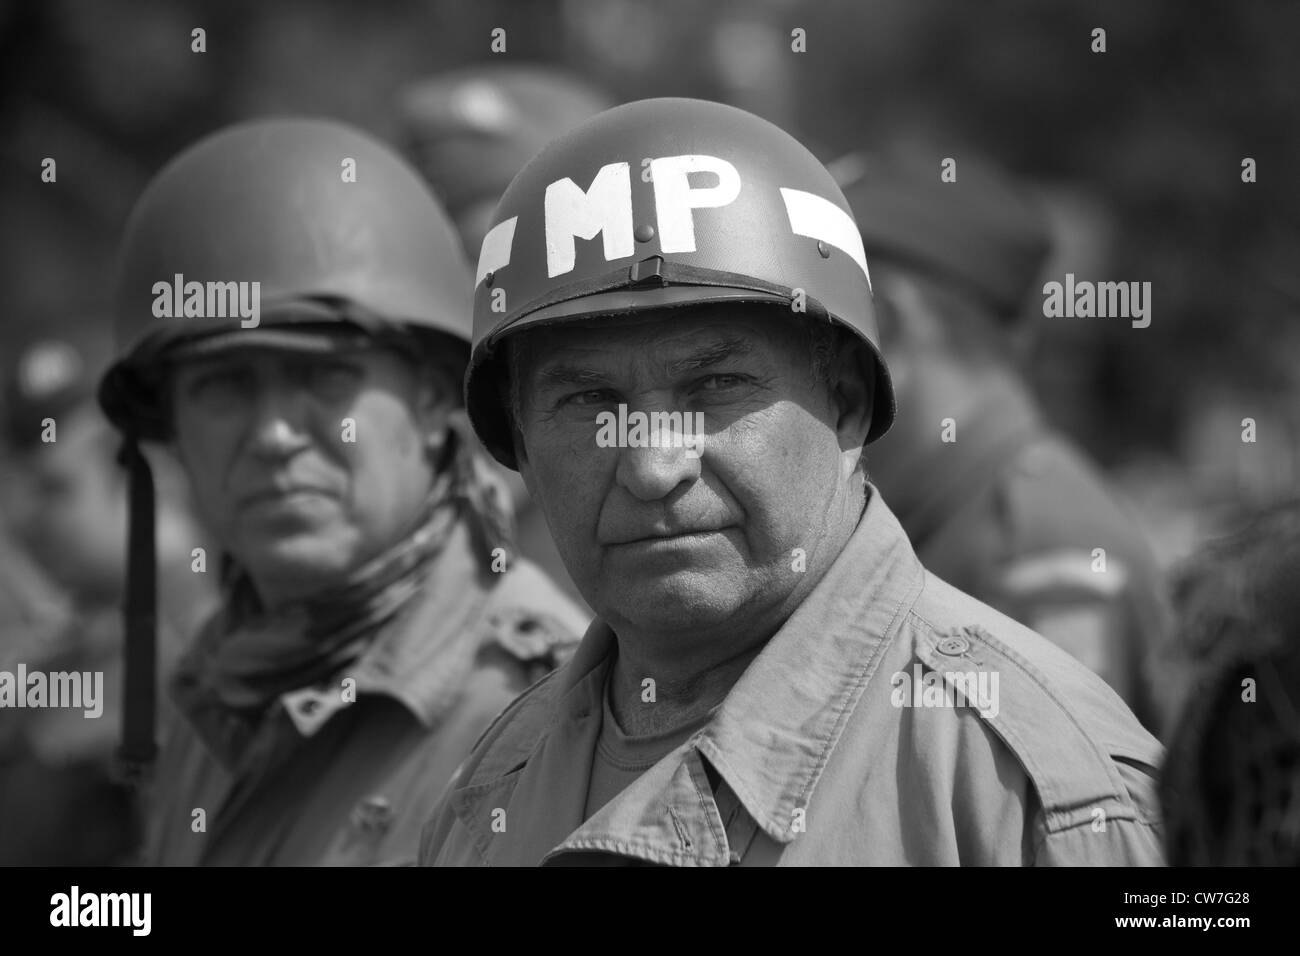 Re-enactor playing 1940's American Soldier with others - Stock Image